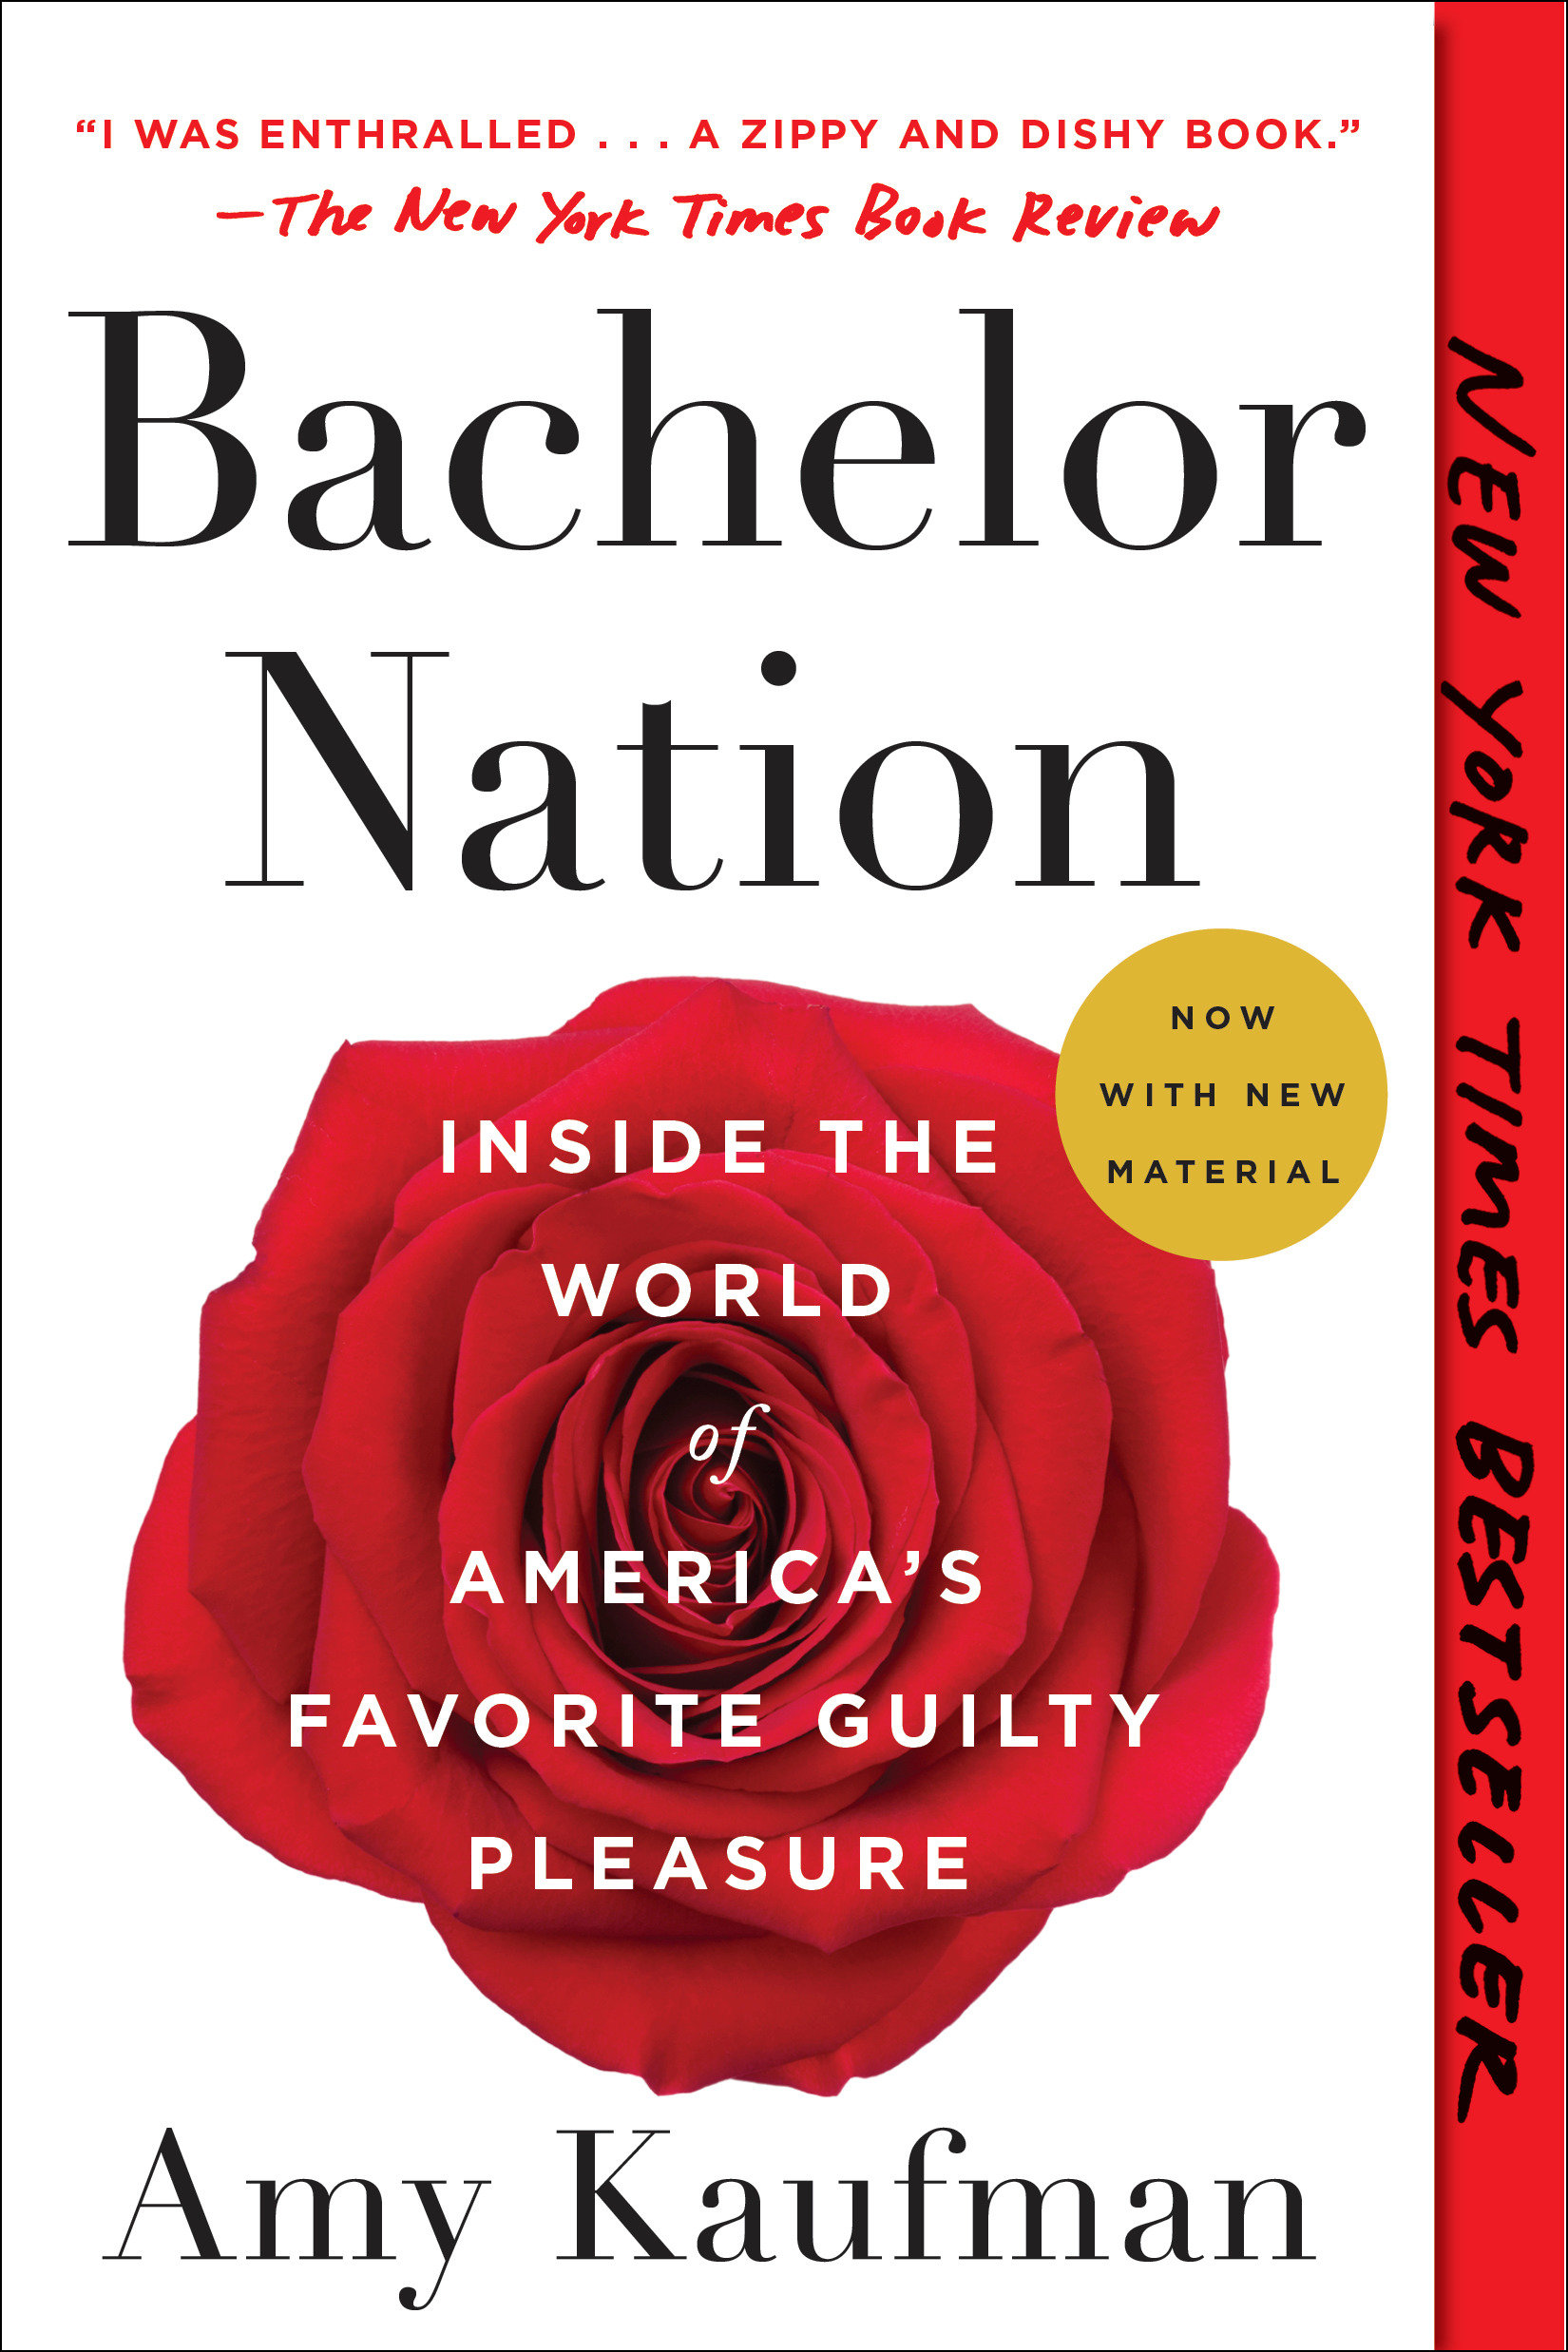 Bachelor Nation Inside the World of America's Favorite Guilty Pleasure